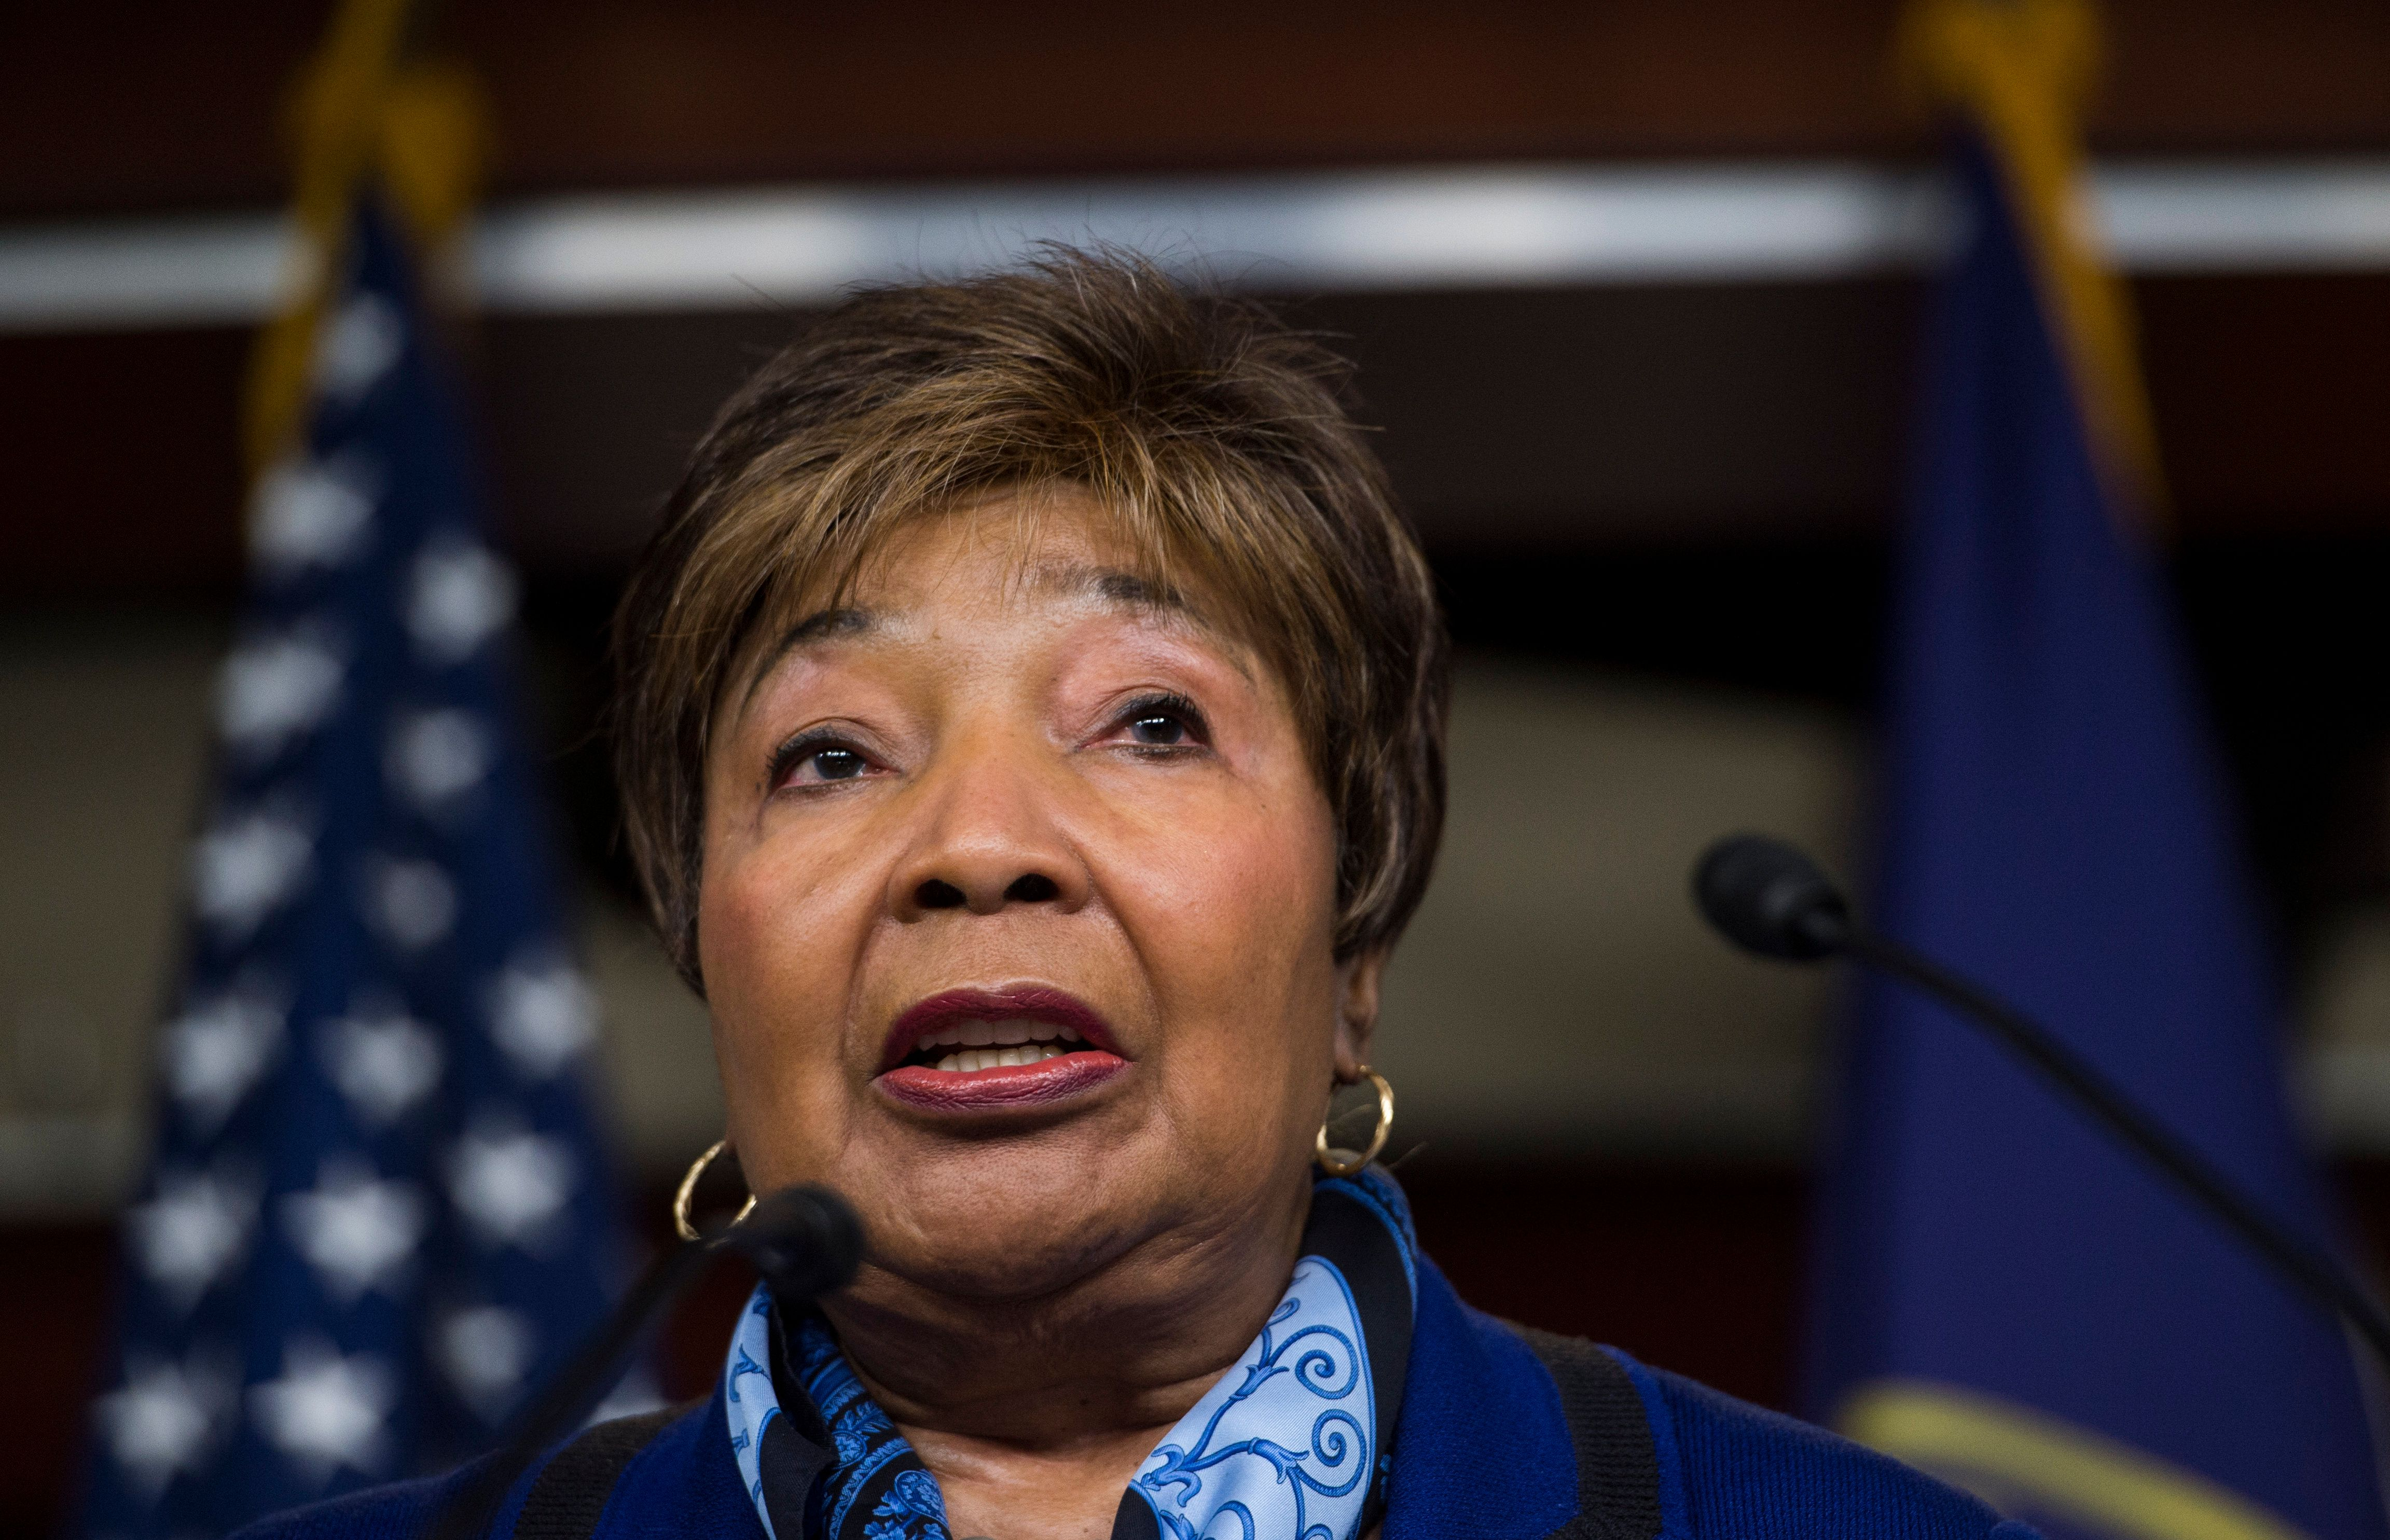 Rep. Eddie Bernice Johnson, D-Texas, participates in the House Democrats' news conference on the Republican budget on Wednesd